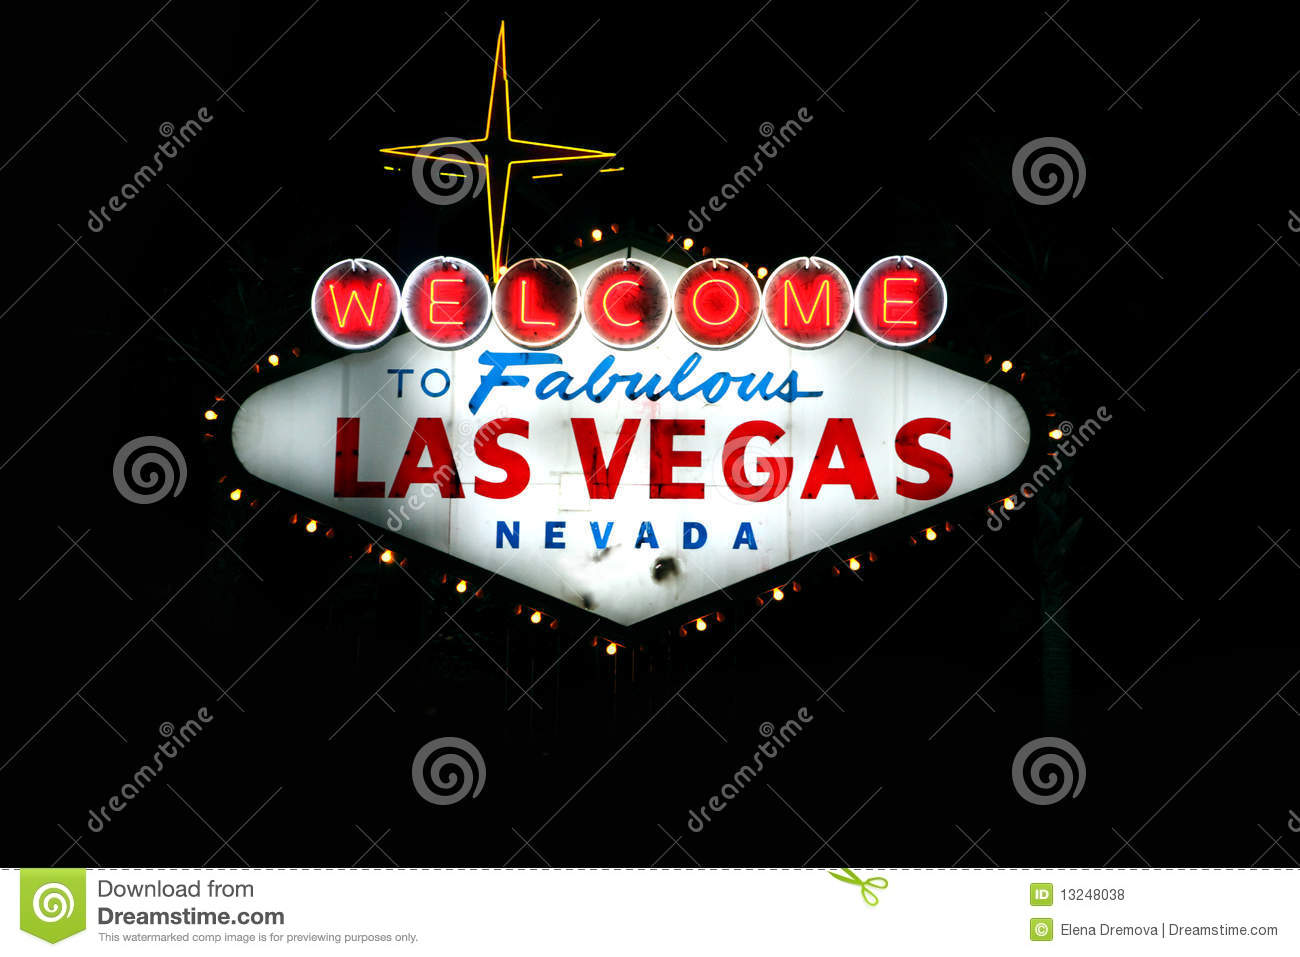 welcome to fabulous las vegas nevada at dusk royalty free stock photos image 13248038. Black Bedroom Furniture Sets. Home Design Ideas